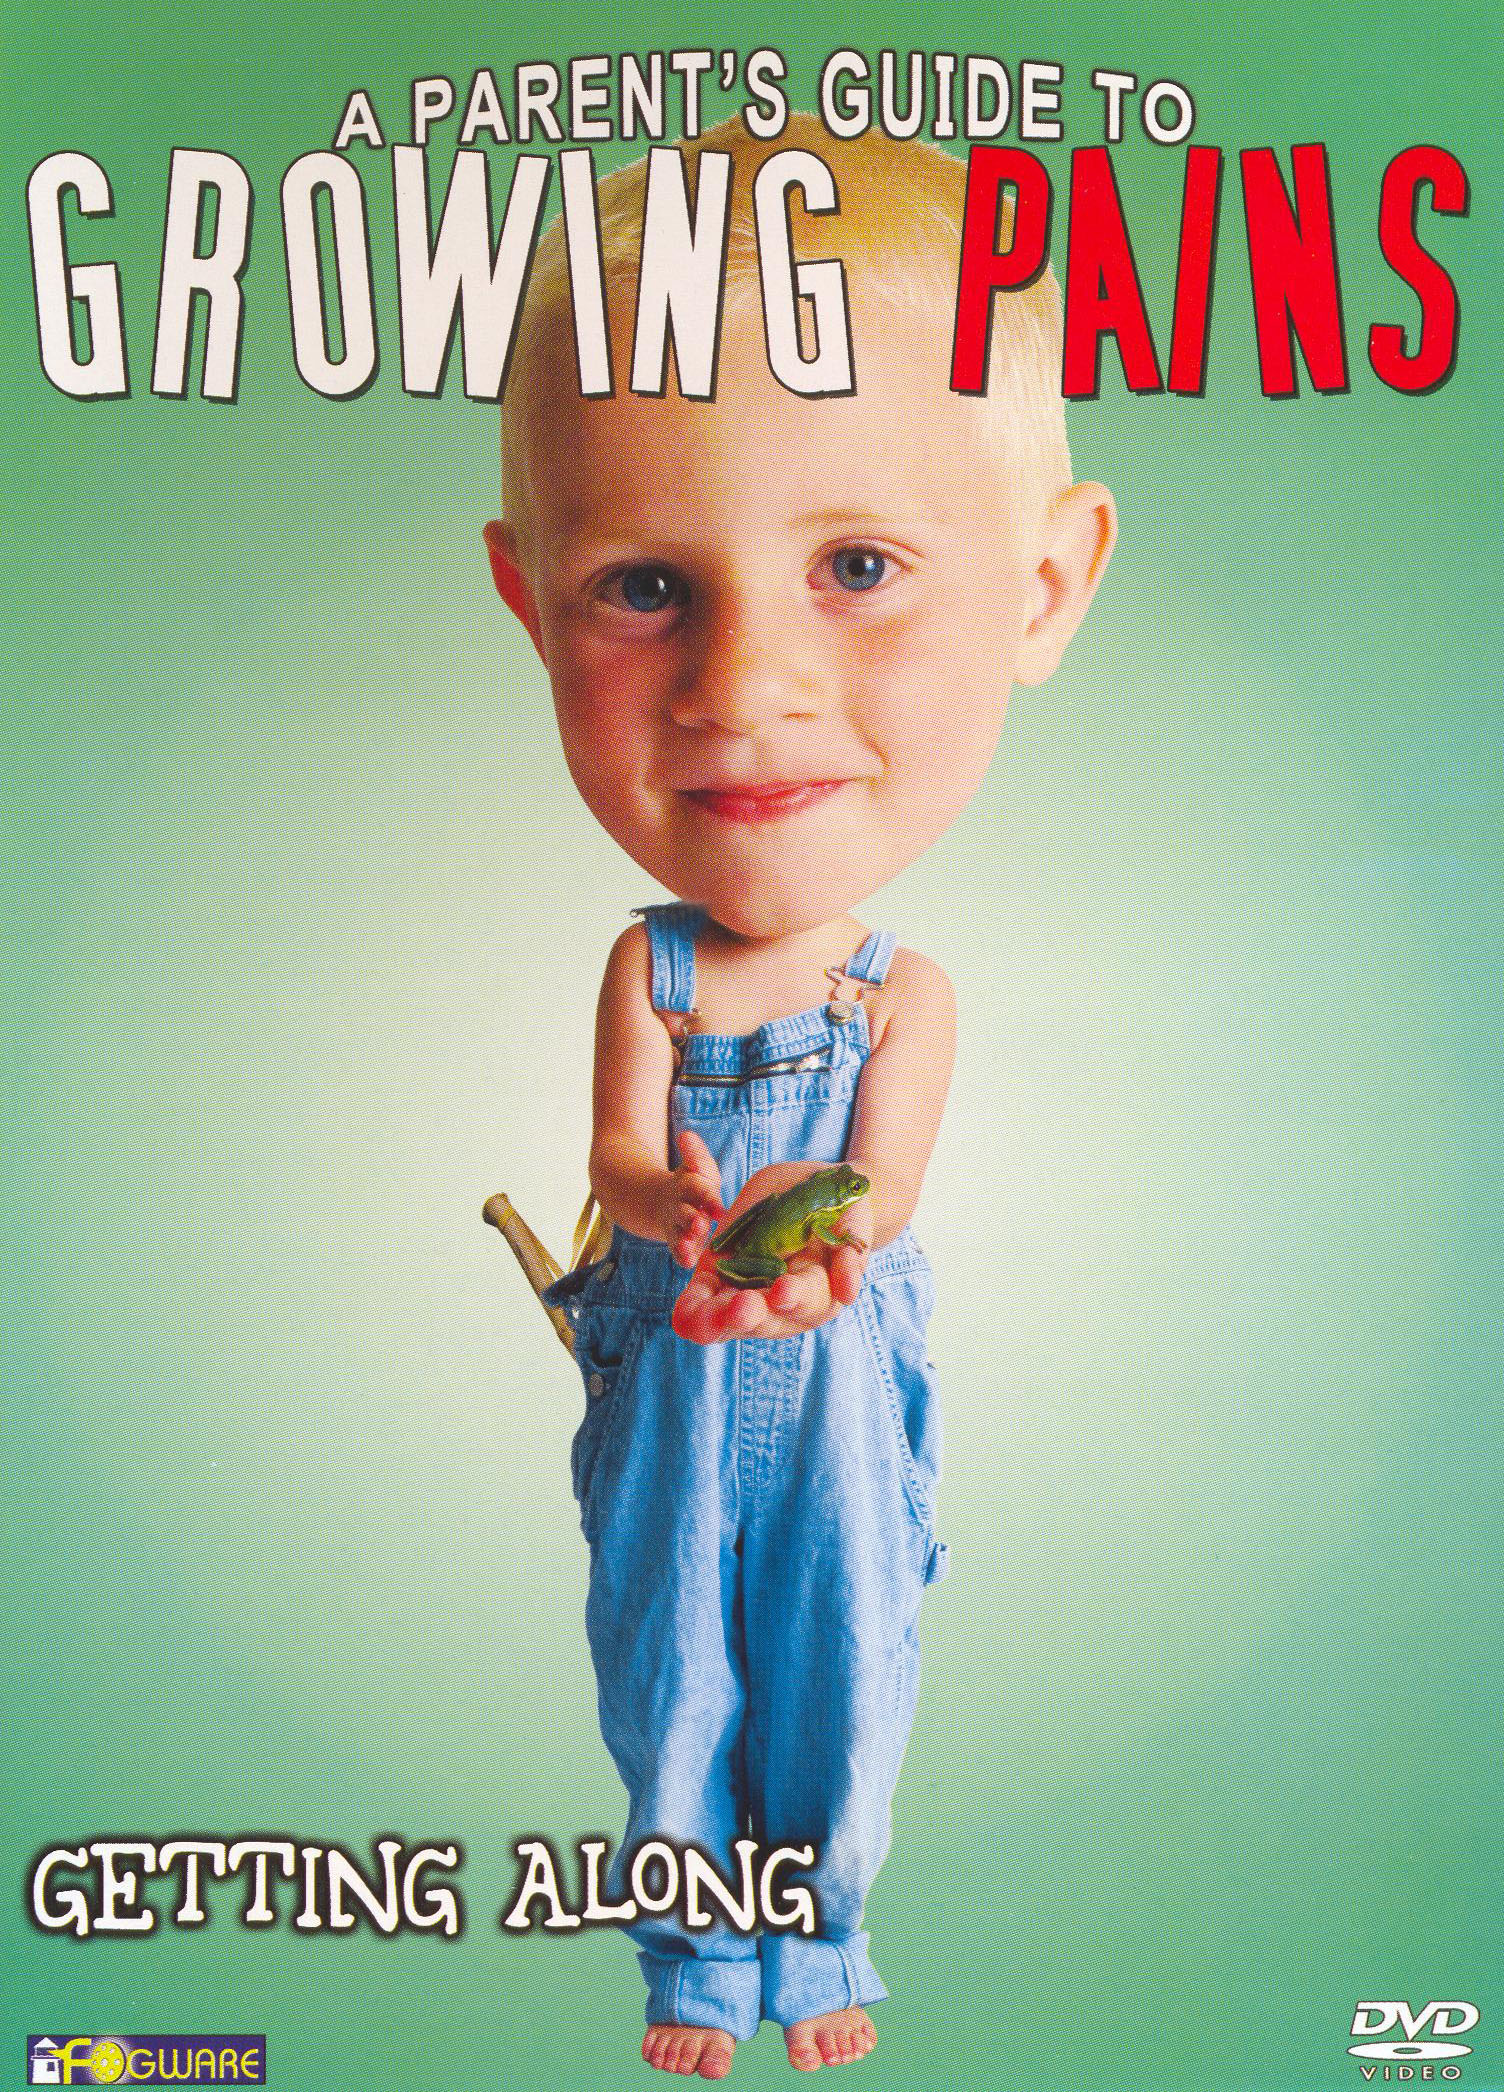 A Parent's Guide to Growing Pains: Getting Along (2004)